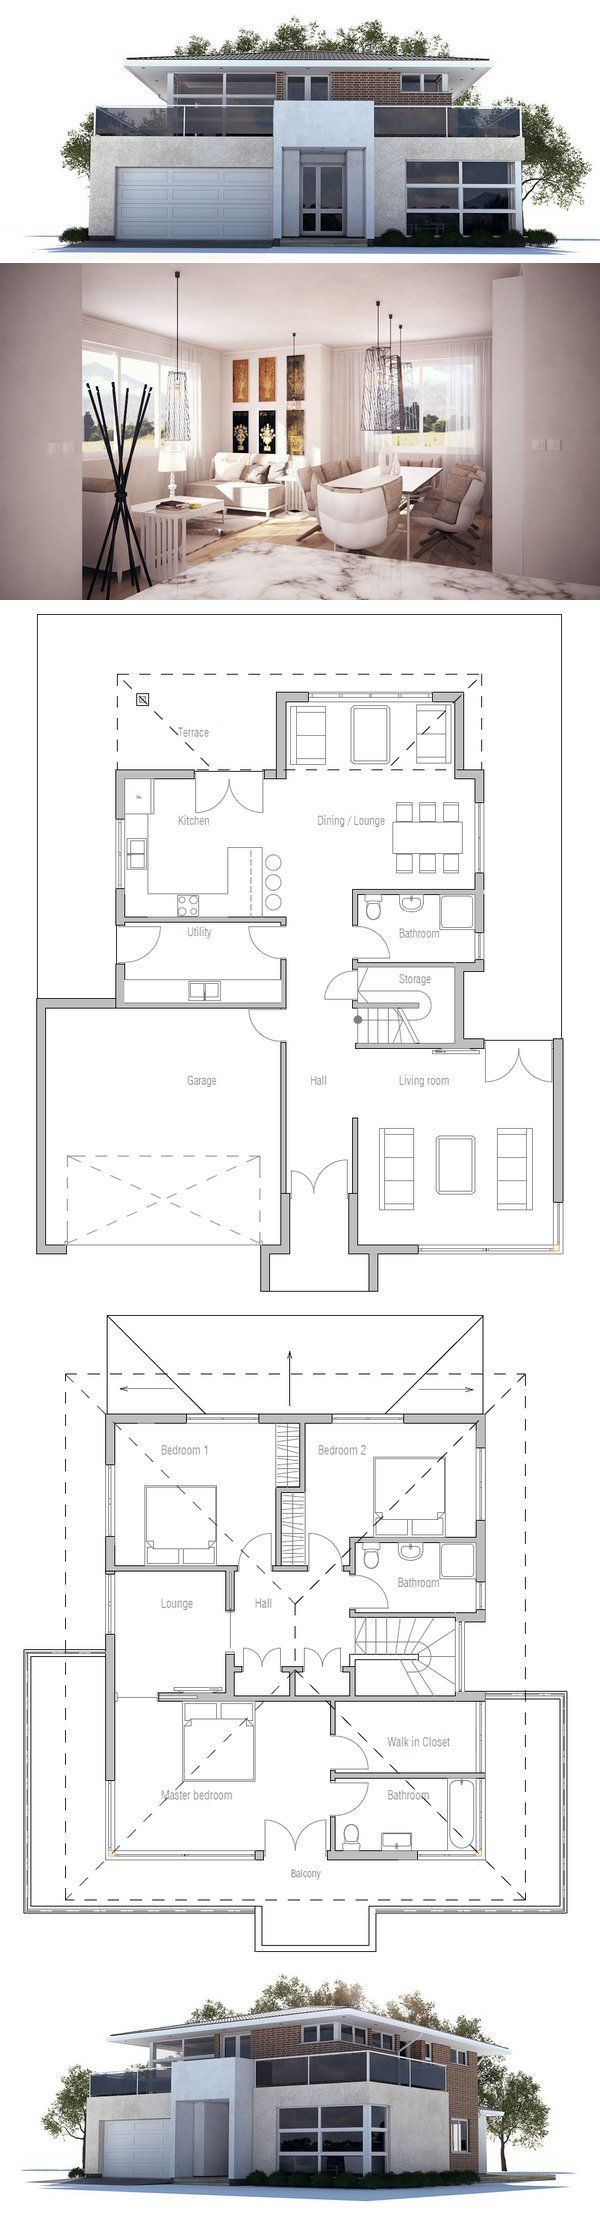 1000+ images about House Design & Floor Plan on Pinterest - ^